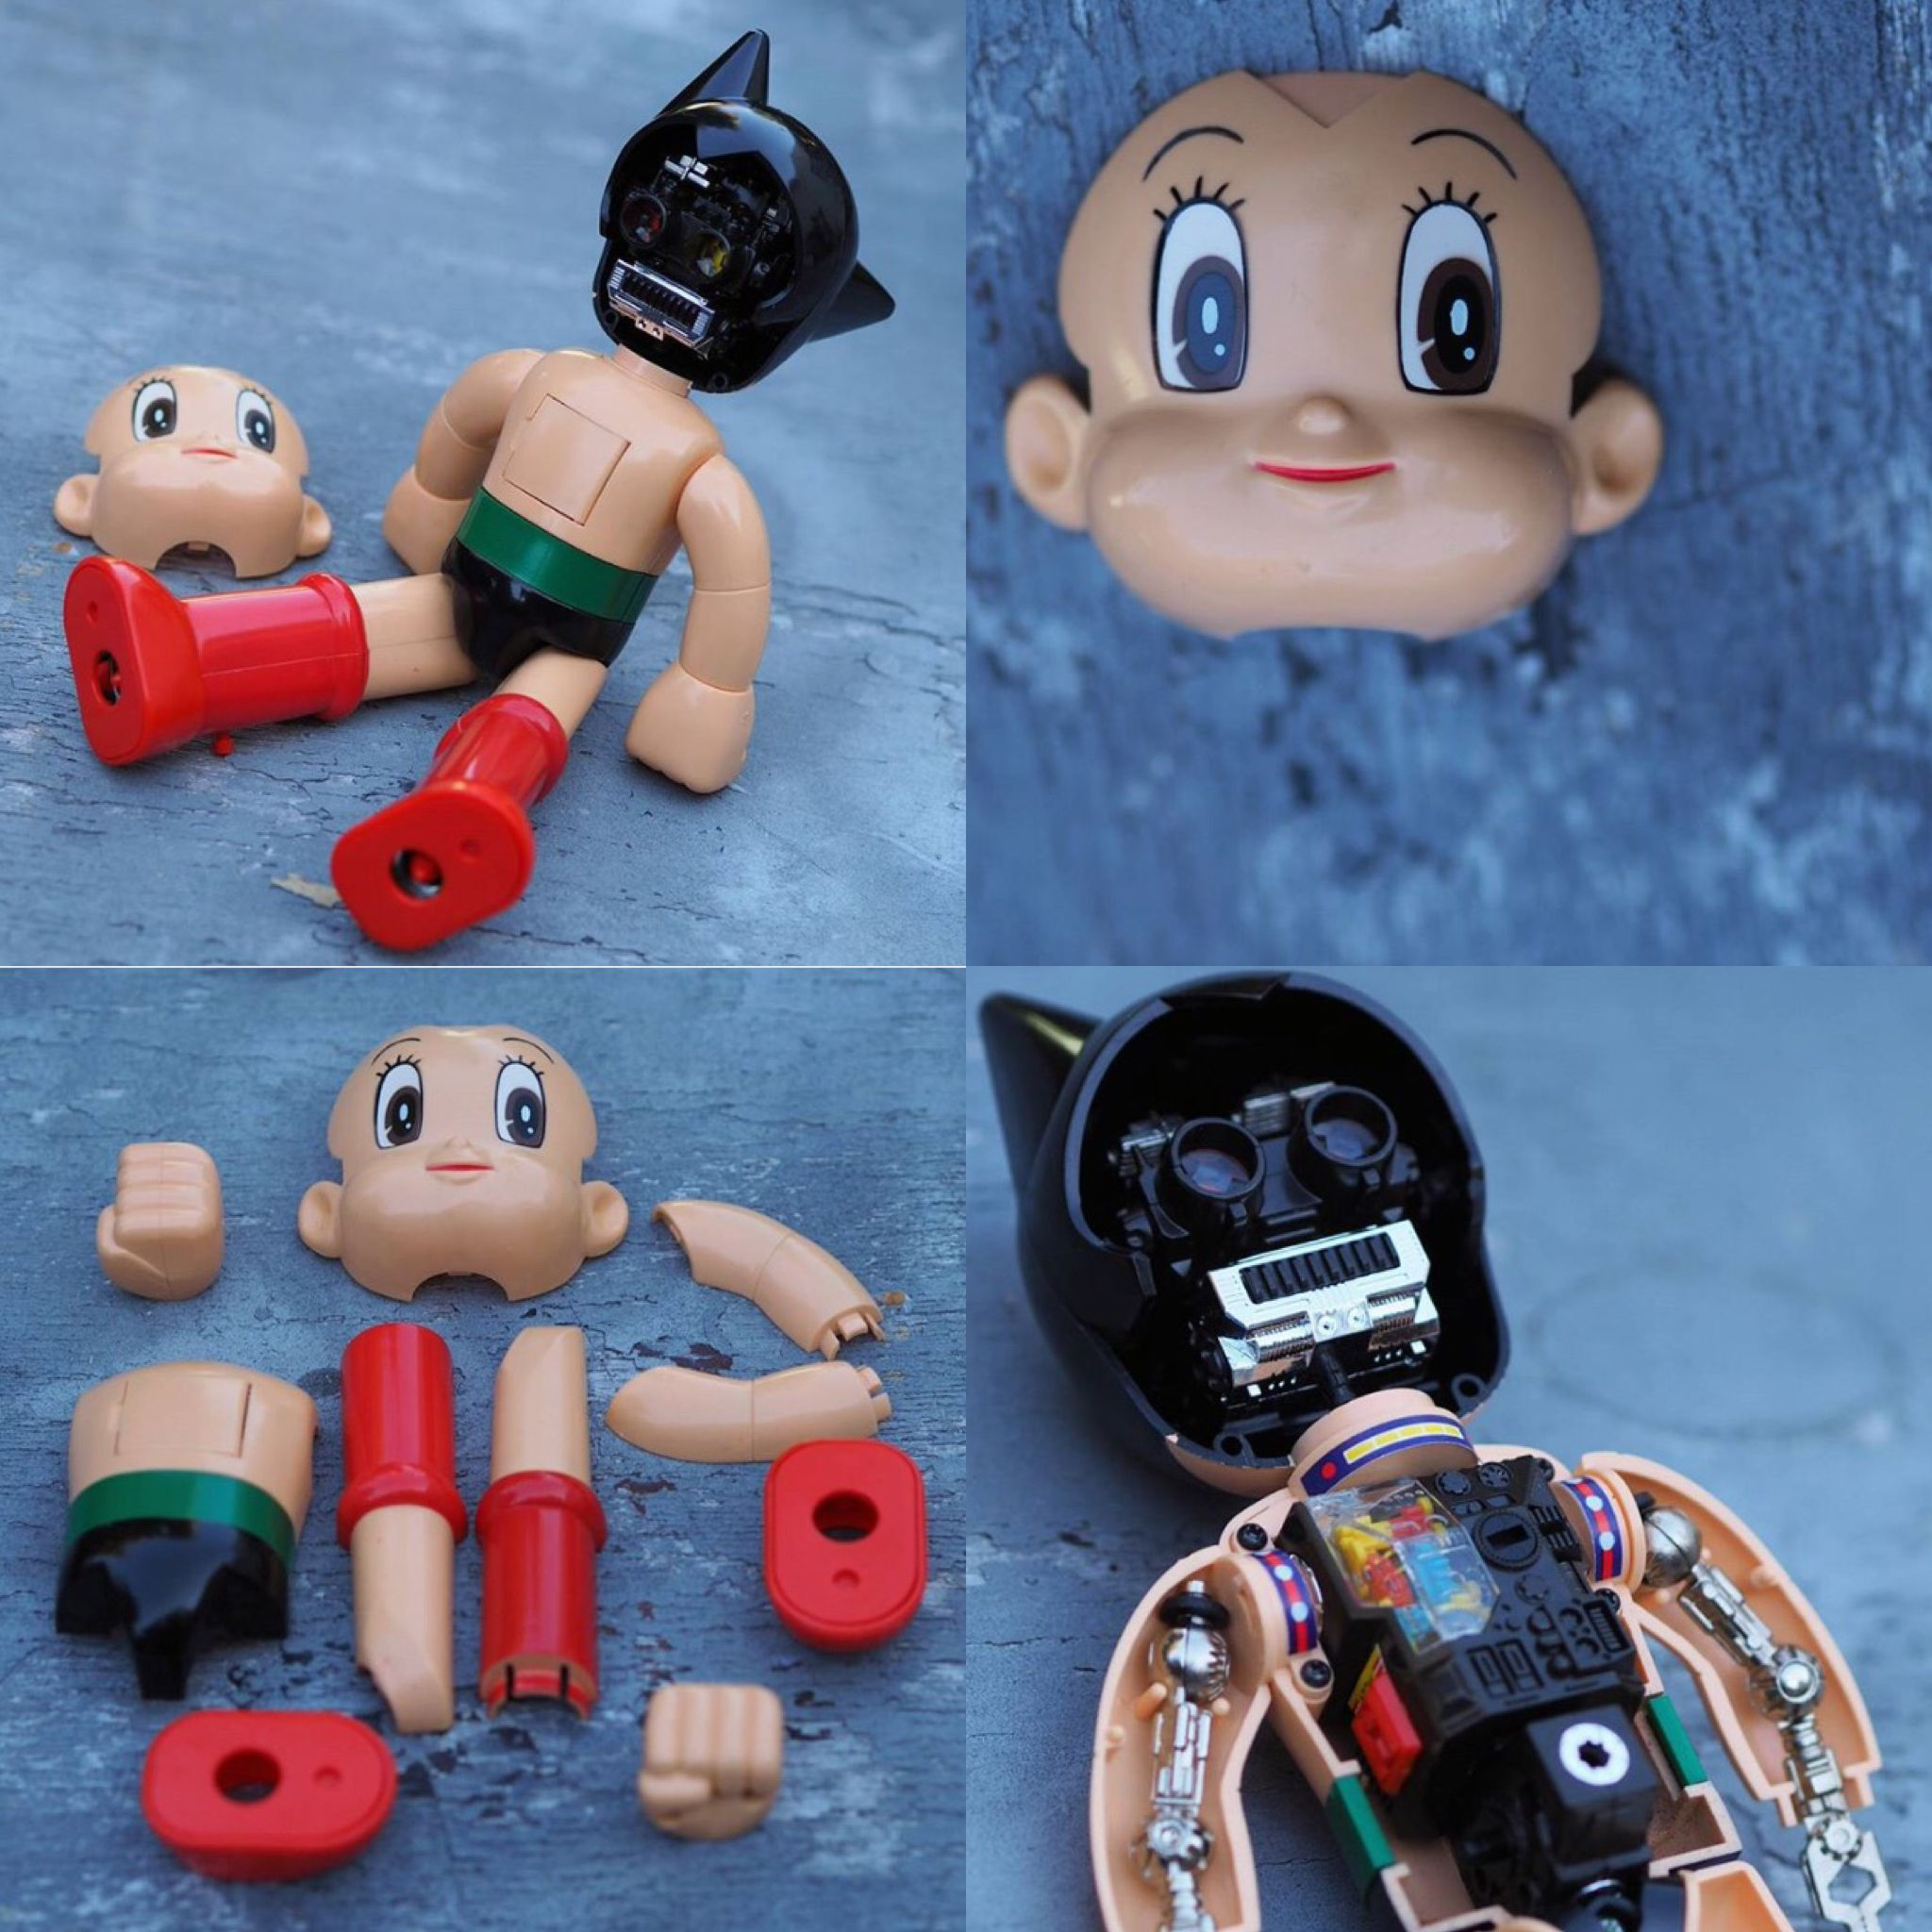 43ee1f99 Mechablock DX Astro Boy by Takara. I would punch a toddler in the face to  get this toy ::)